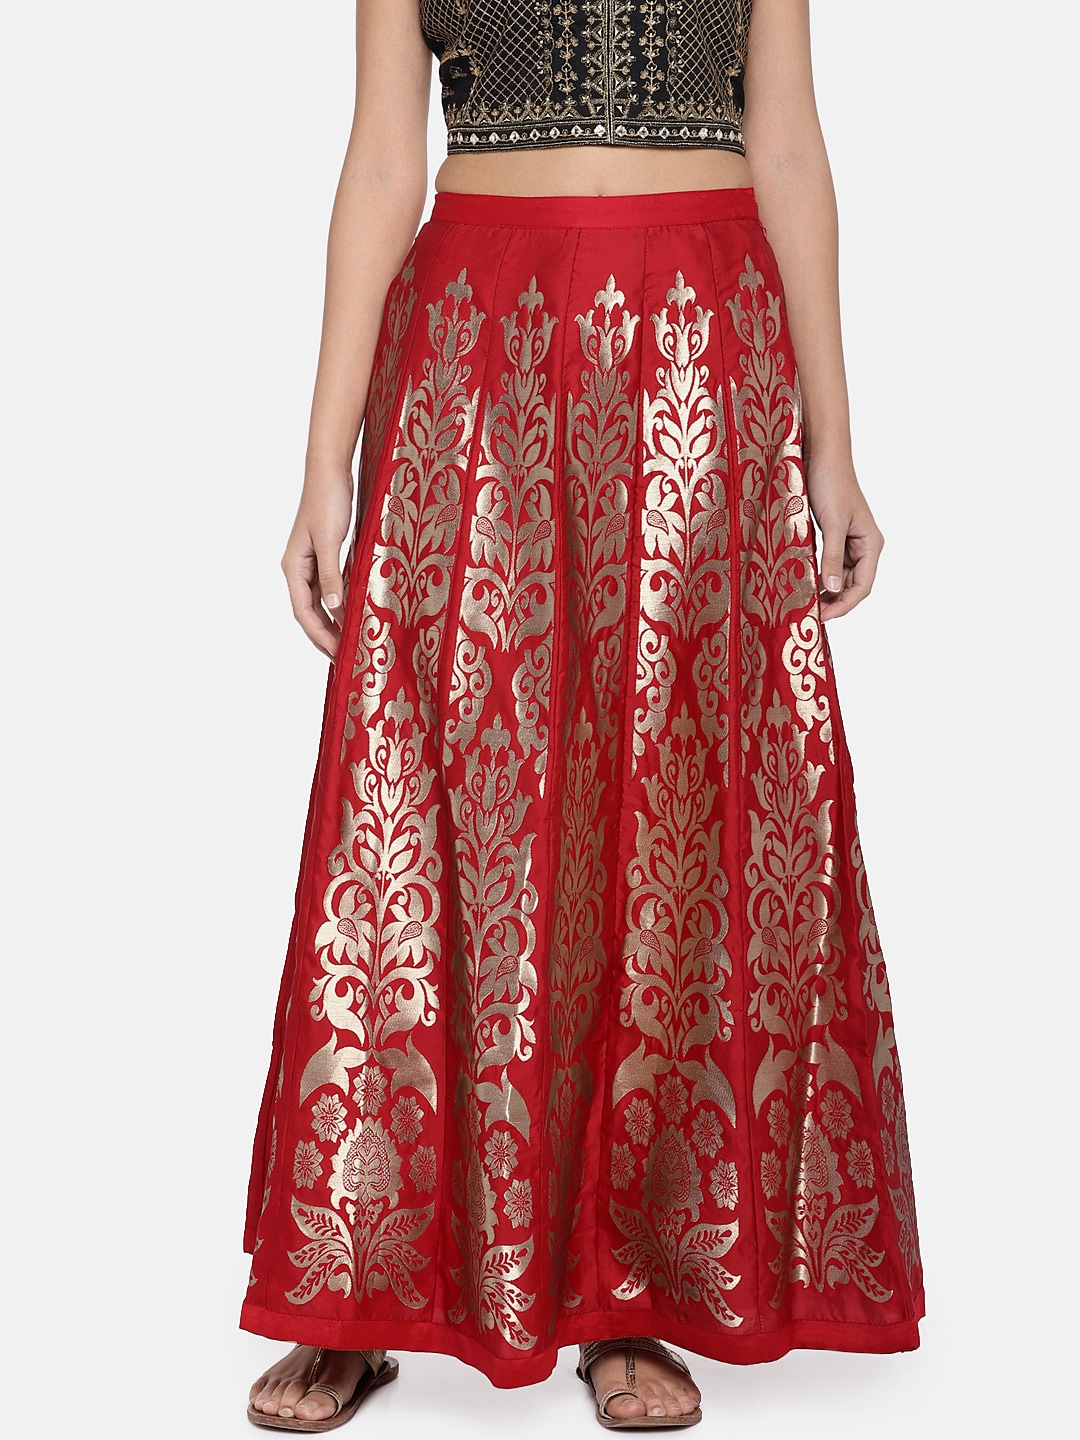 0e2e3cda3 Buy Ethnic Skirts Online India